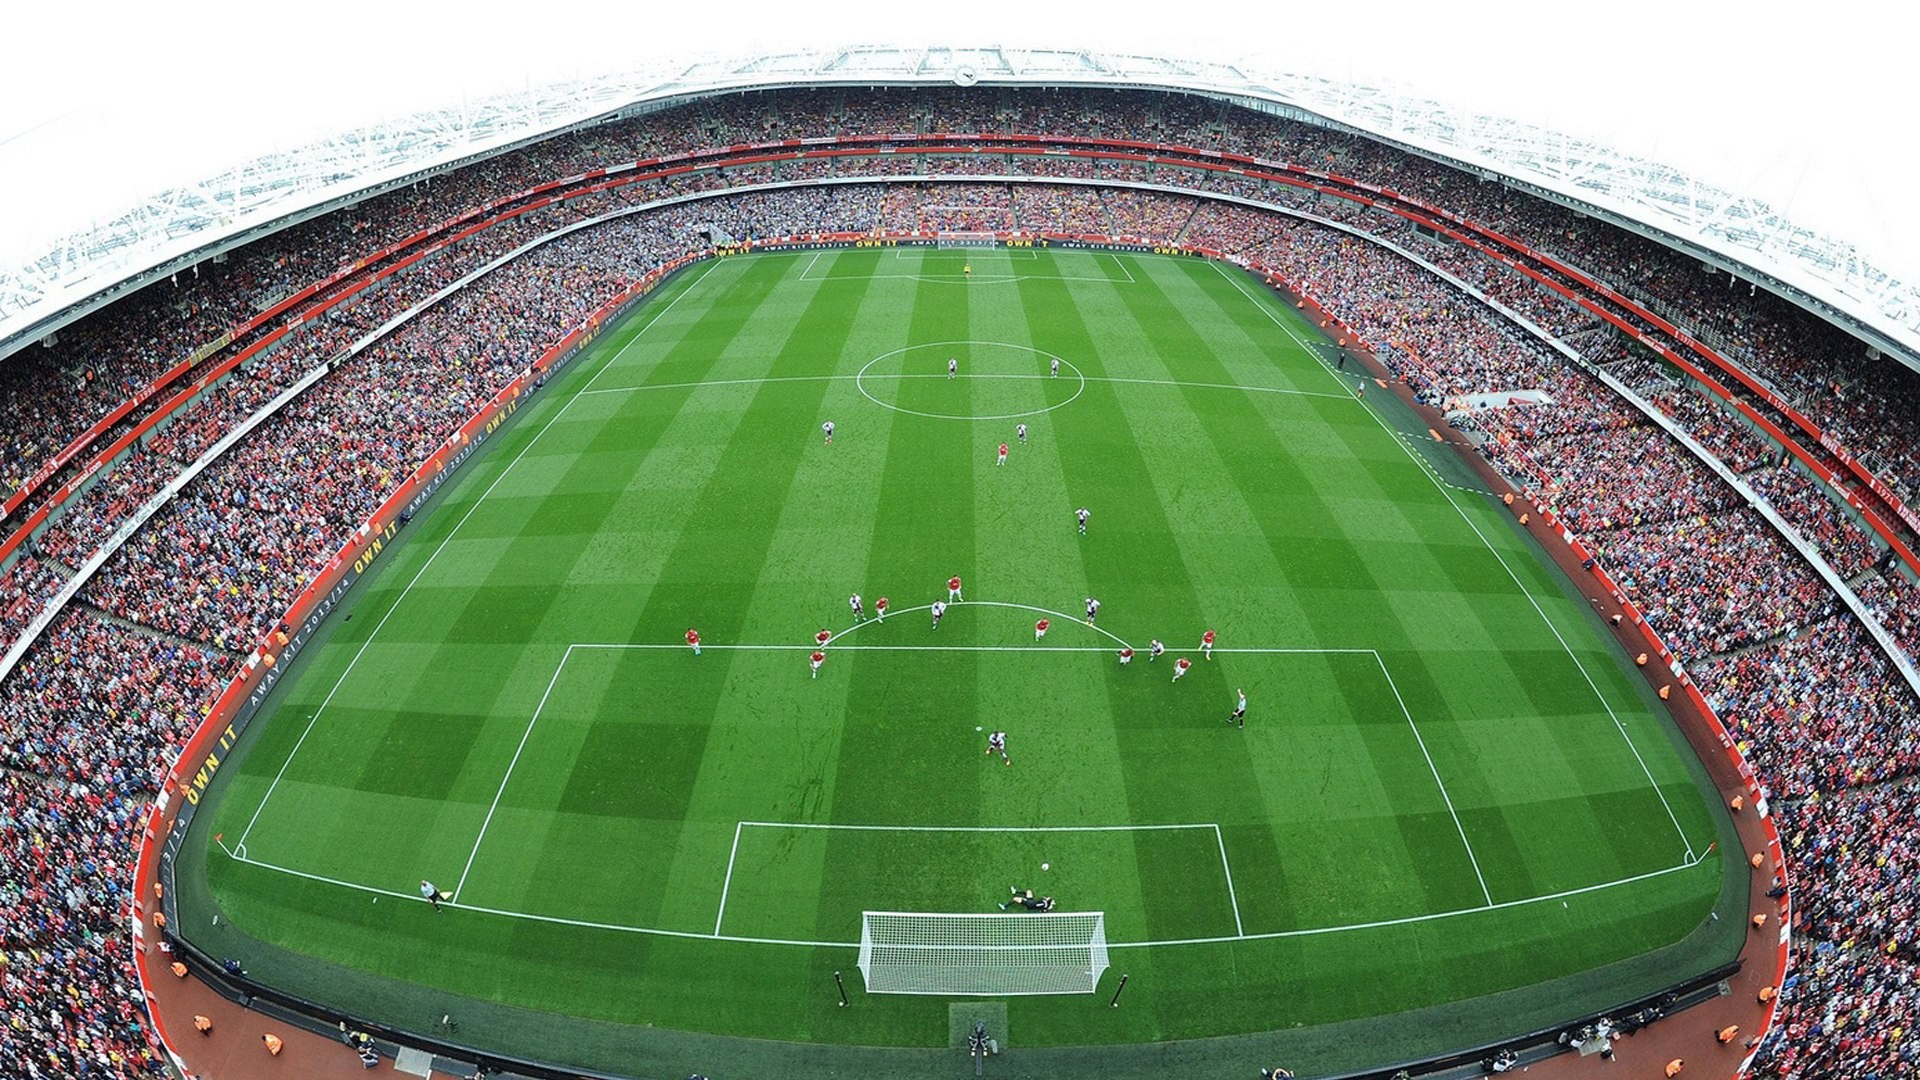 Emirates Stadium Arsenal Fc Wallpapers And Images Wallpapers 1920x1080 Wallpaper Teahub Io